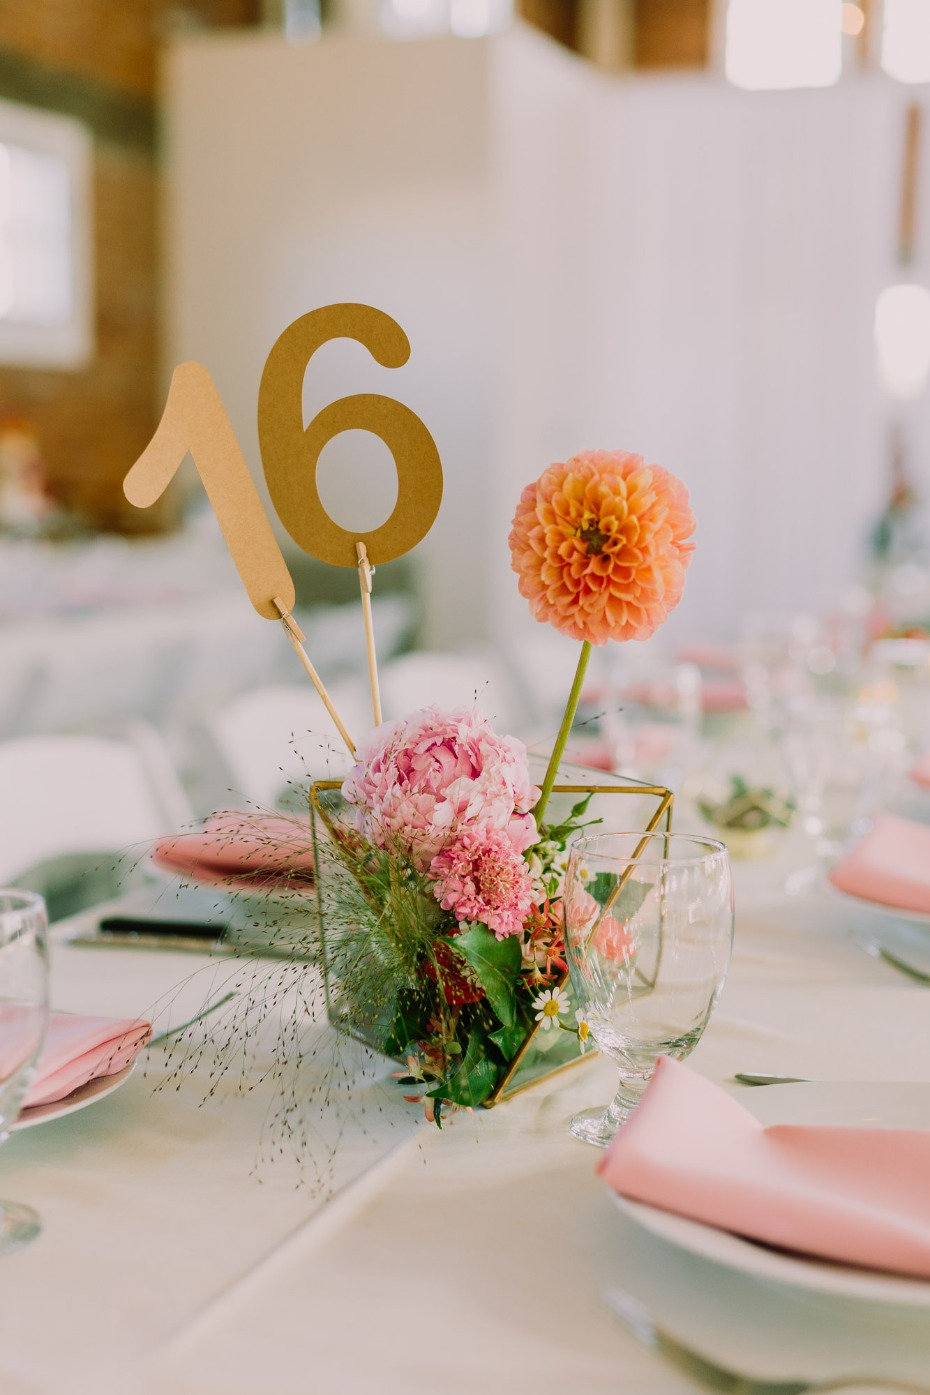 Asymmetrical centerpiece